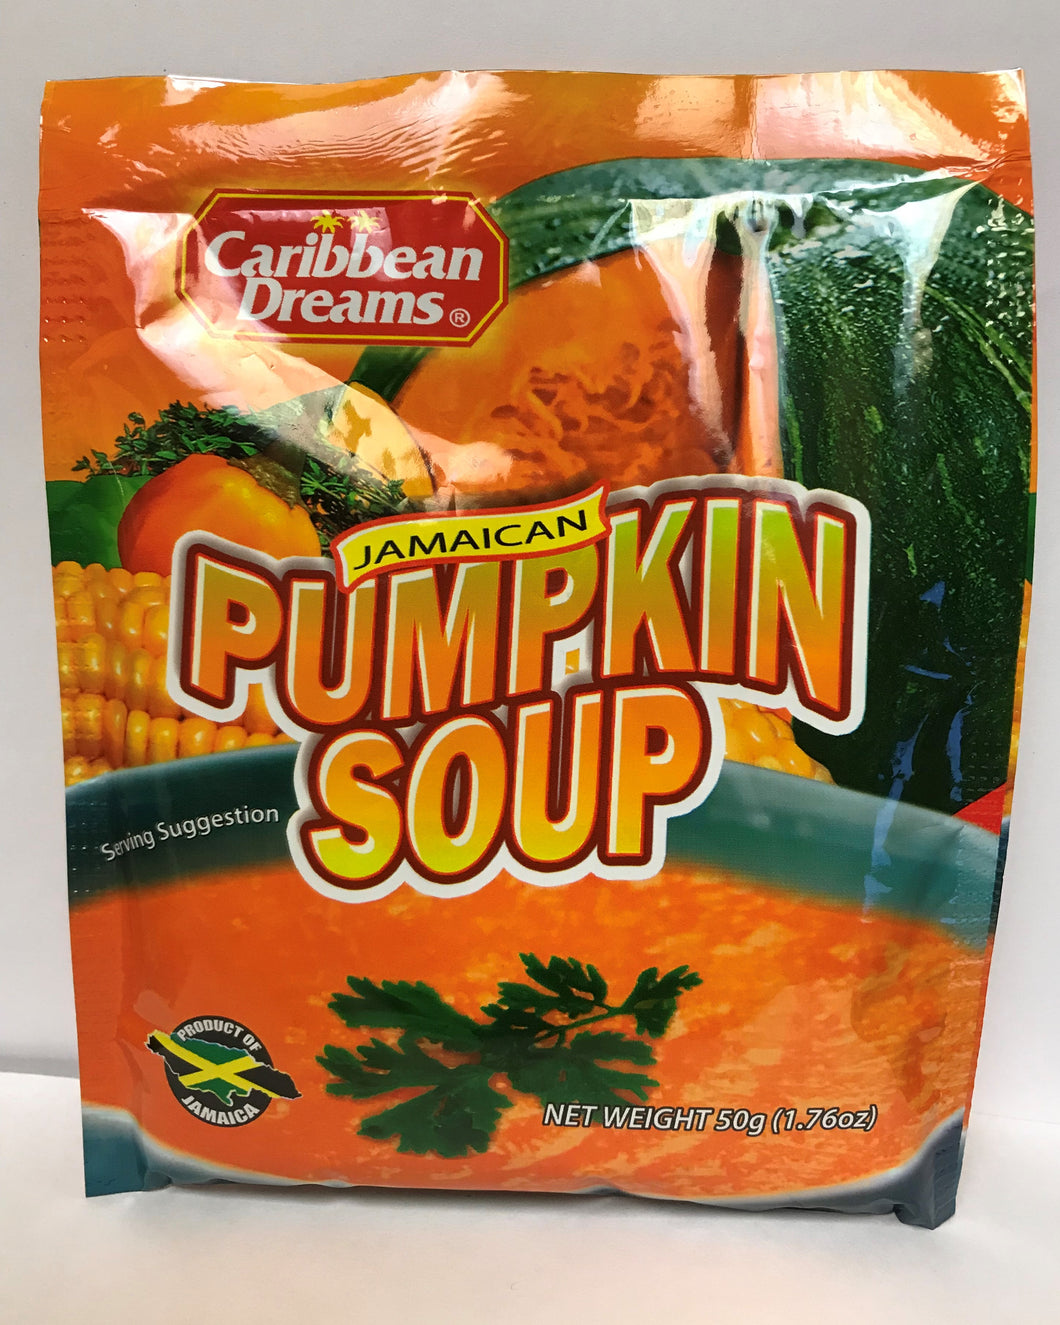 Caribbean Dreams Jamaican Pumpkin Soup